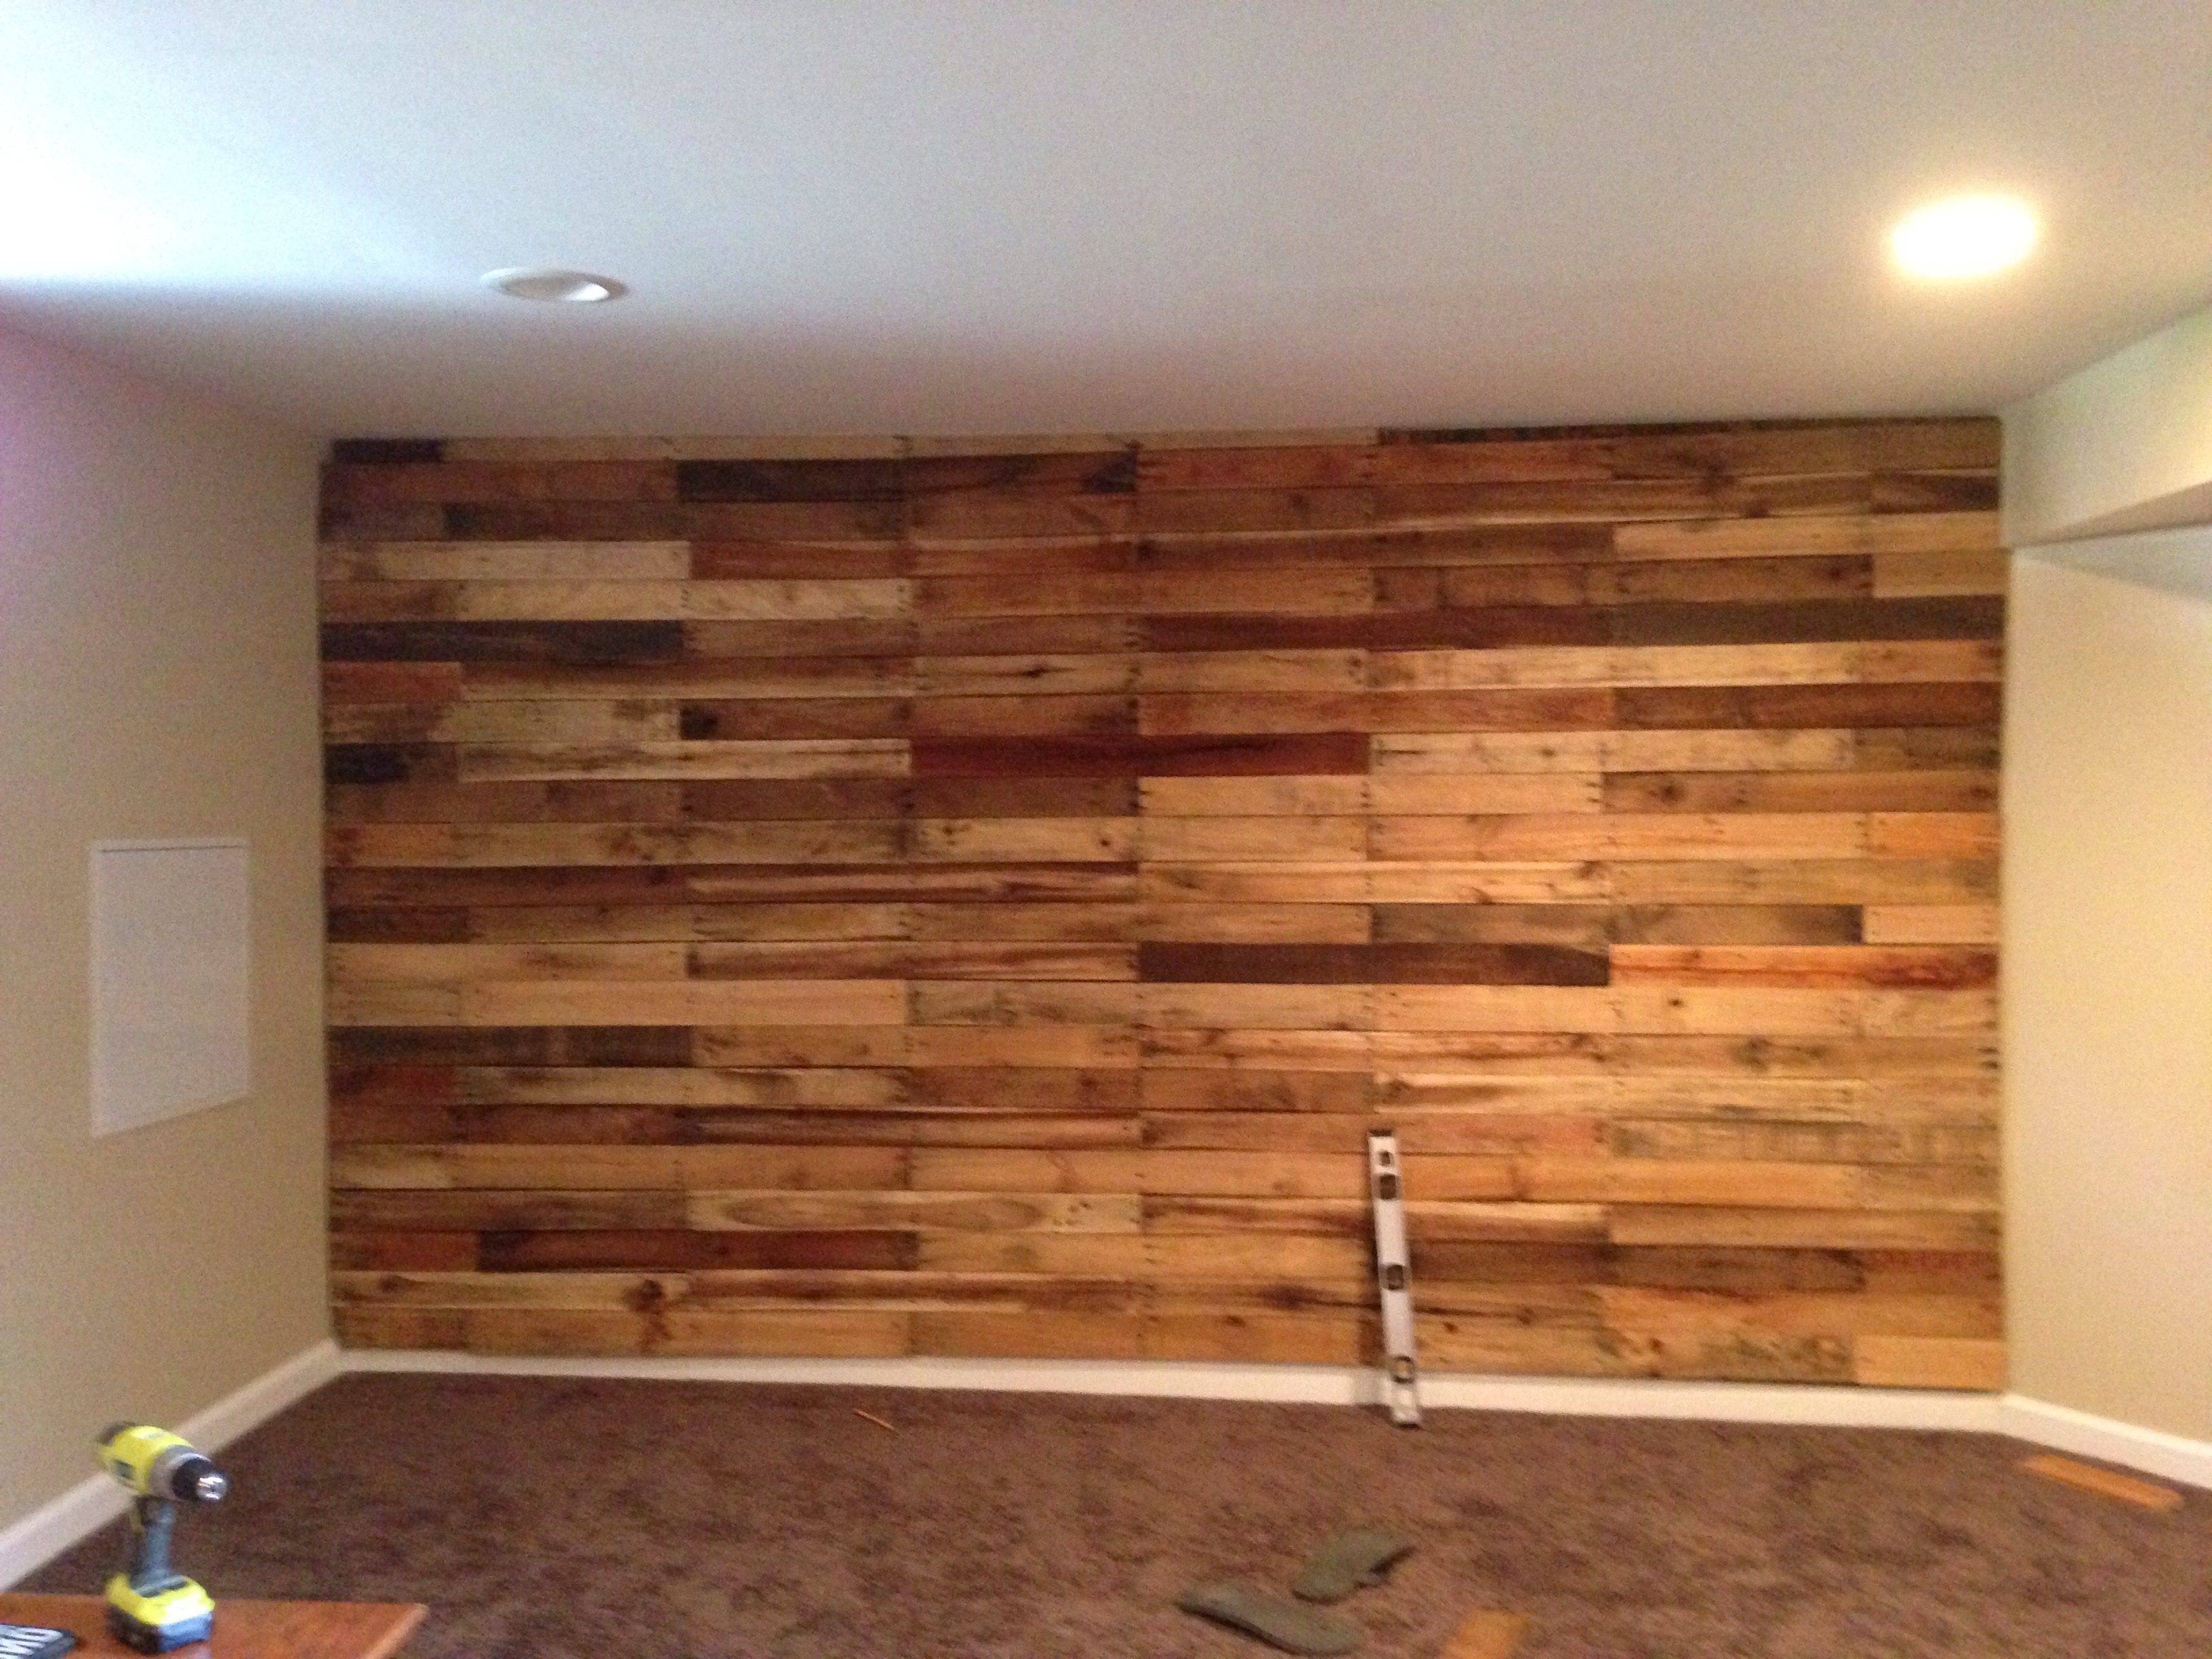 Pallet Accent Wall! – Album On Imgur Intended For Popular Garage Wall Accents (View 11 of 15)